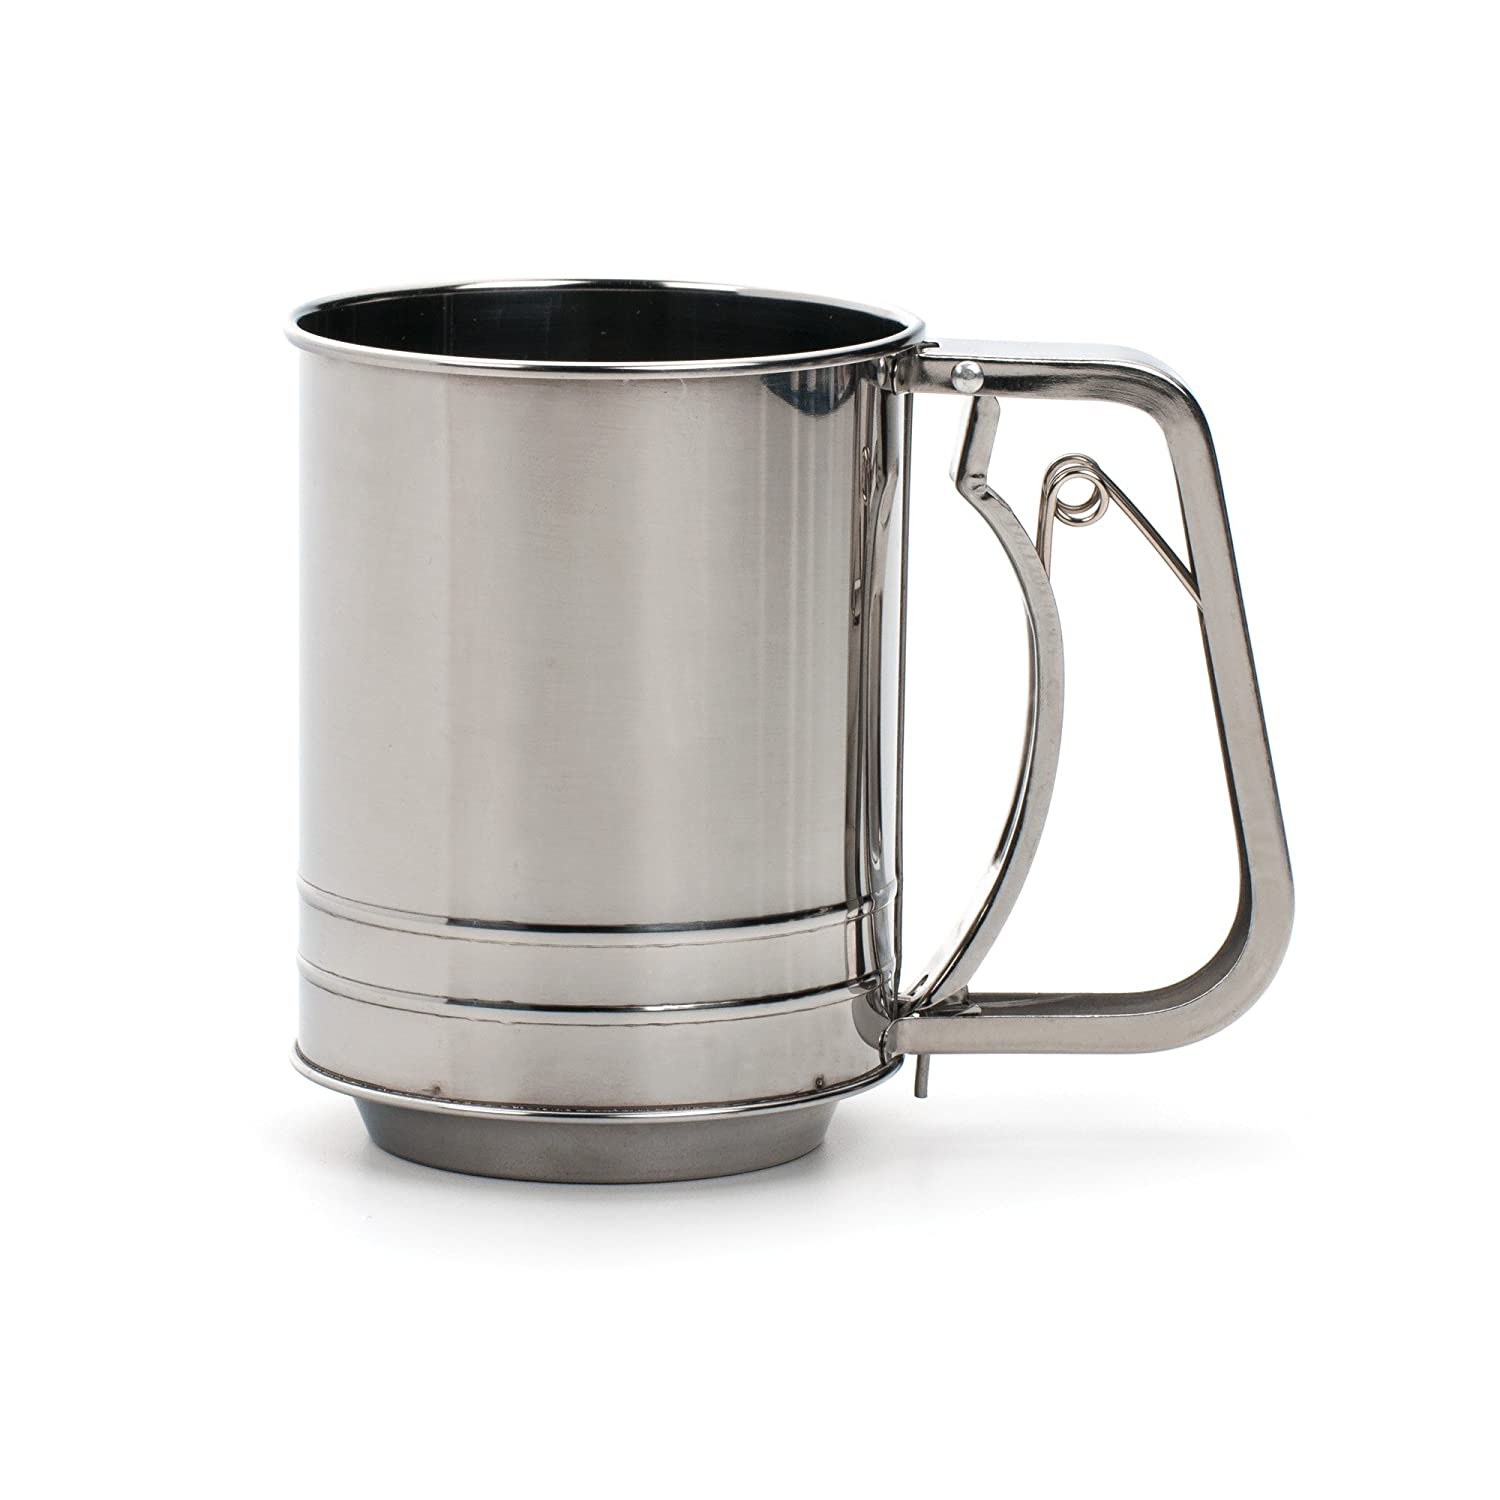 RSVP Endurance Stainless Steel Crank Style Flour Sifter, 3 Cup (SIFT-3CR) RSVP International